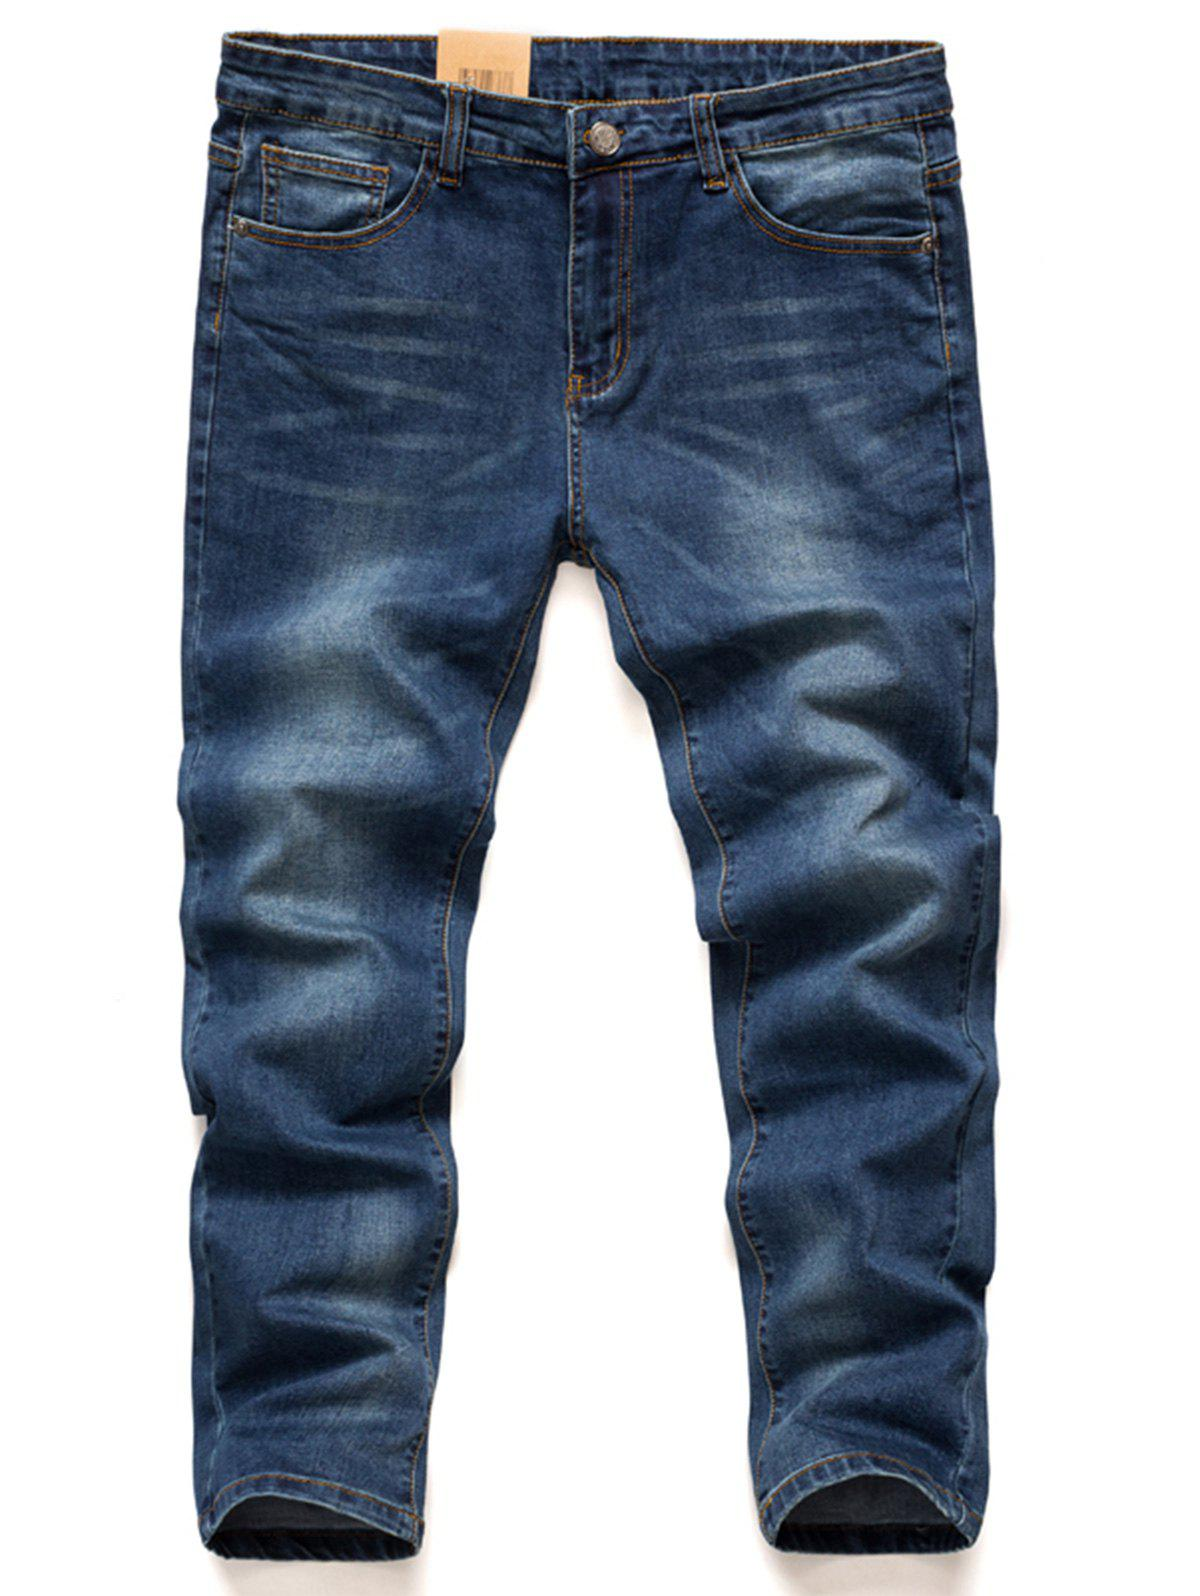 Plus Size Stretchy Bleach Wash Harem JeansMEN<br><br>Size: 48; Color: BLUE; Style: Fashion; Pant Style: Harem Pants; Pant Length: Long Pants; Material: Cotton,Jean,Polyester; Fit Type: Regular; Front Style: Flat; Closure Type: Zipper Fly; Waist Type: Low; With Belt: No; Weight: 0.8000kg; Package Contents: 1 x Jeans;